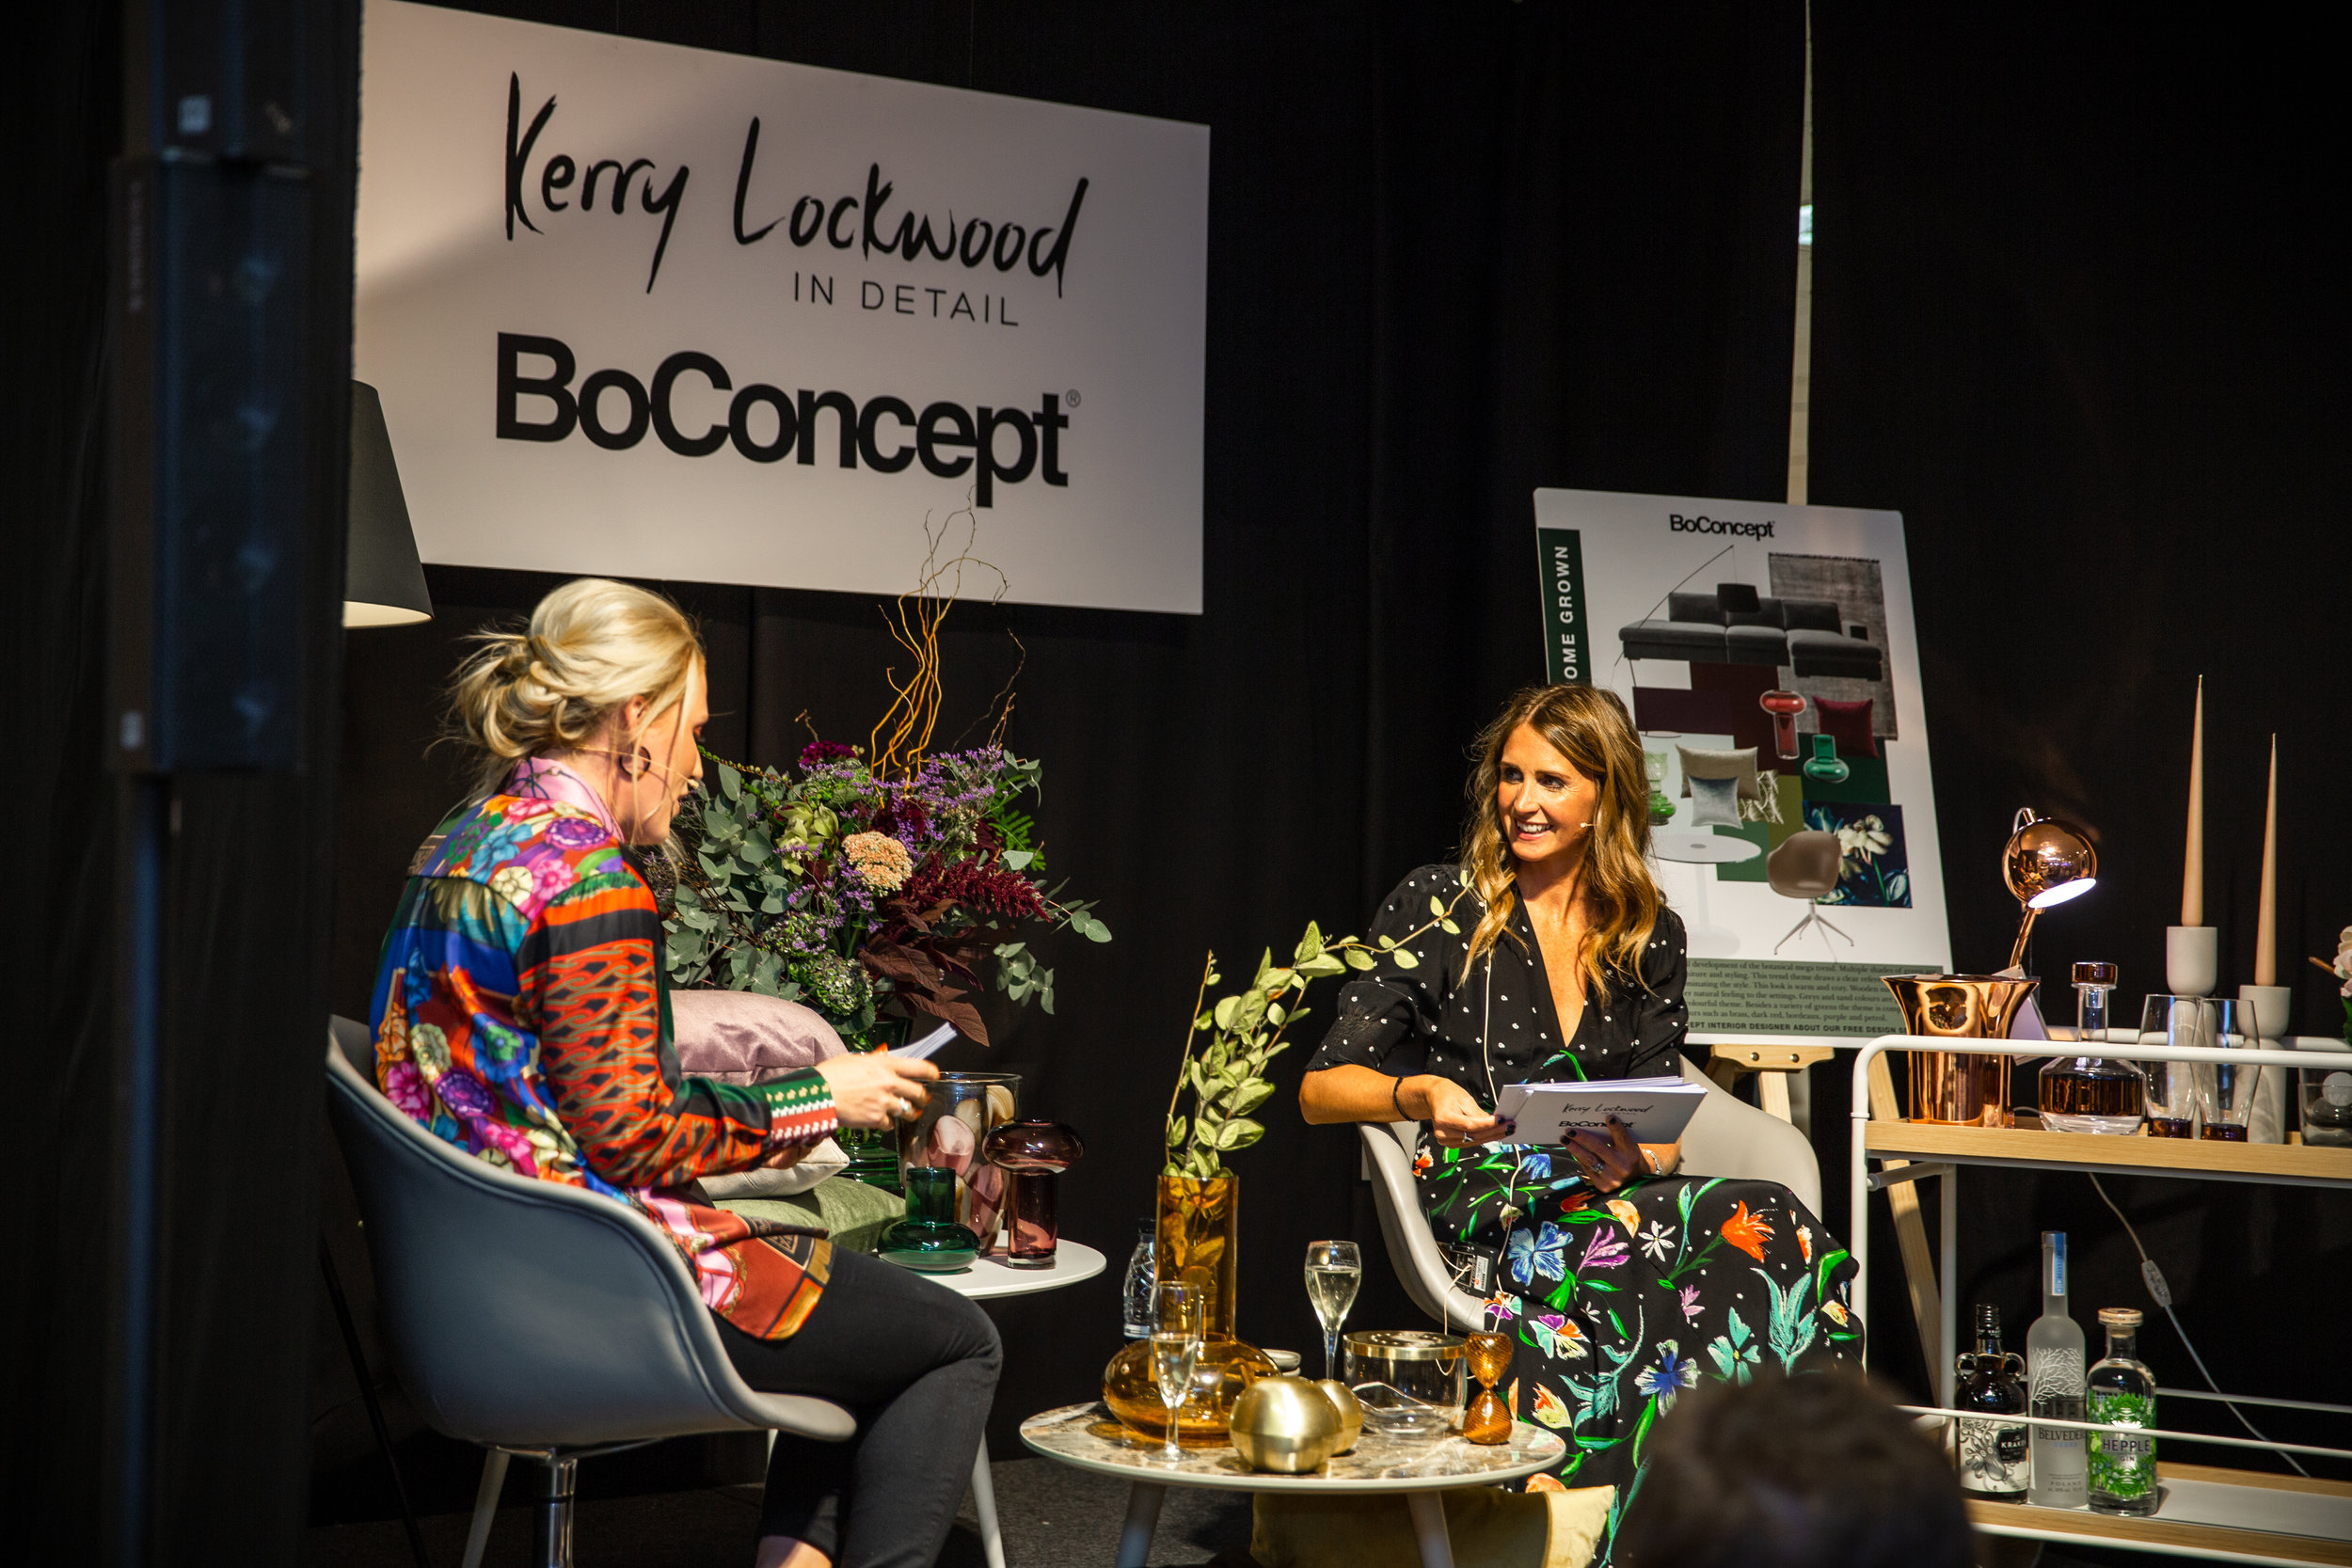 Kerry Lockwood in conversation with Emma Dickinson  ©  Lee Gibbins Photography